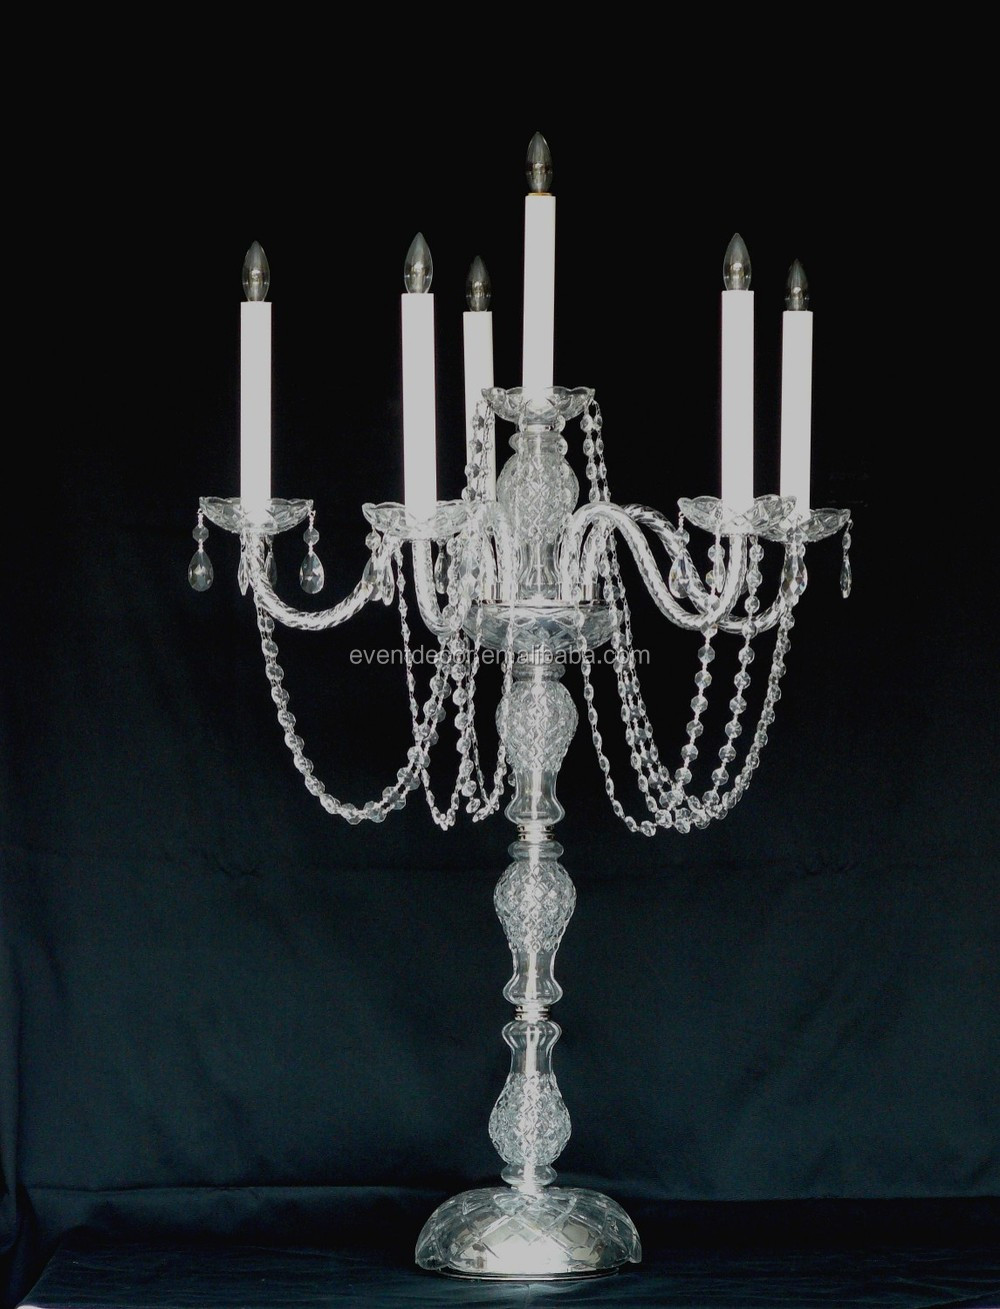 New product arm wedding candelabra for party home